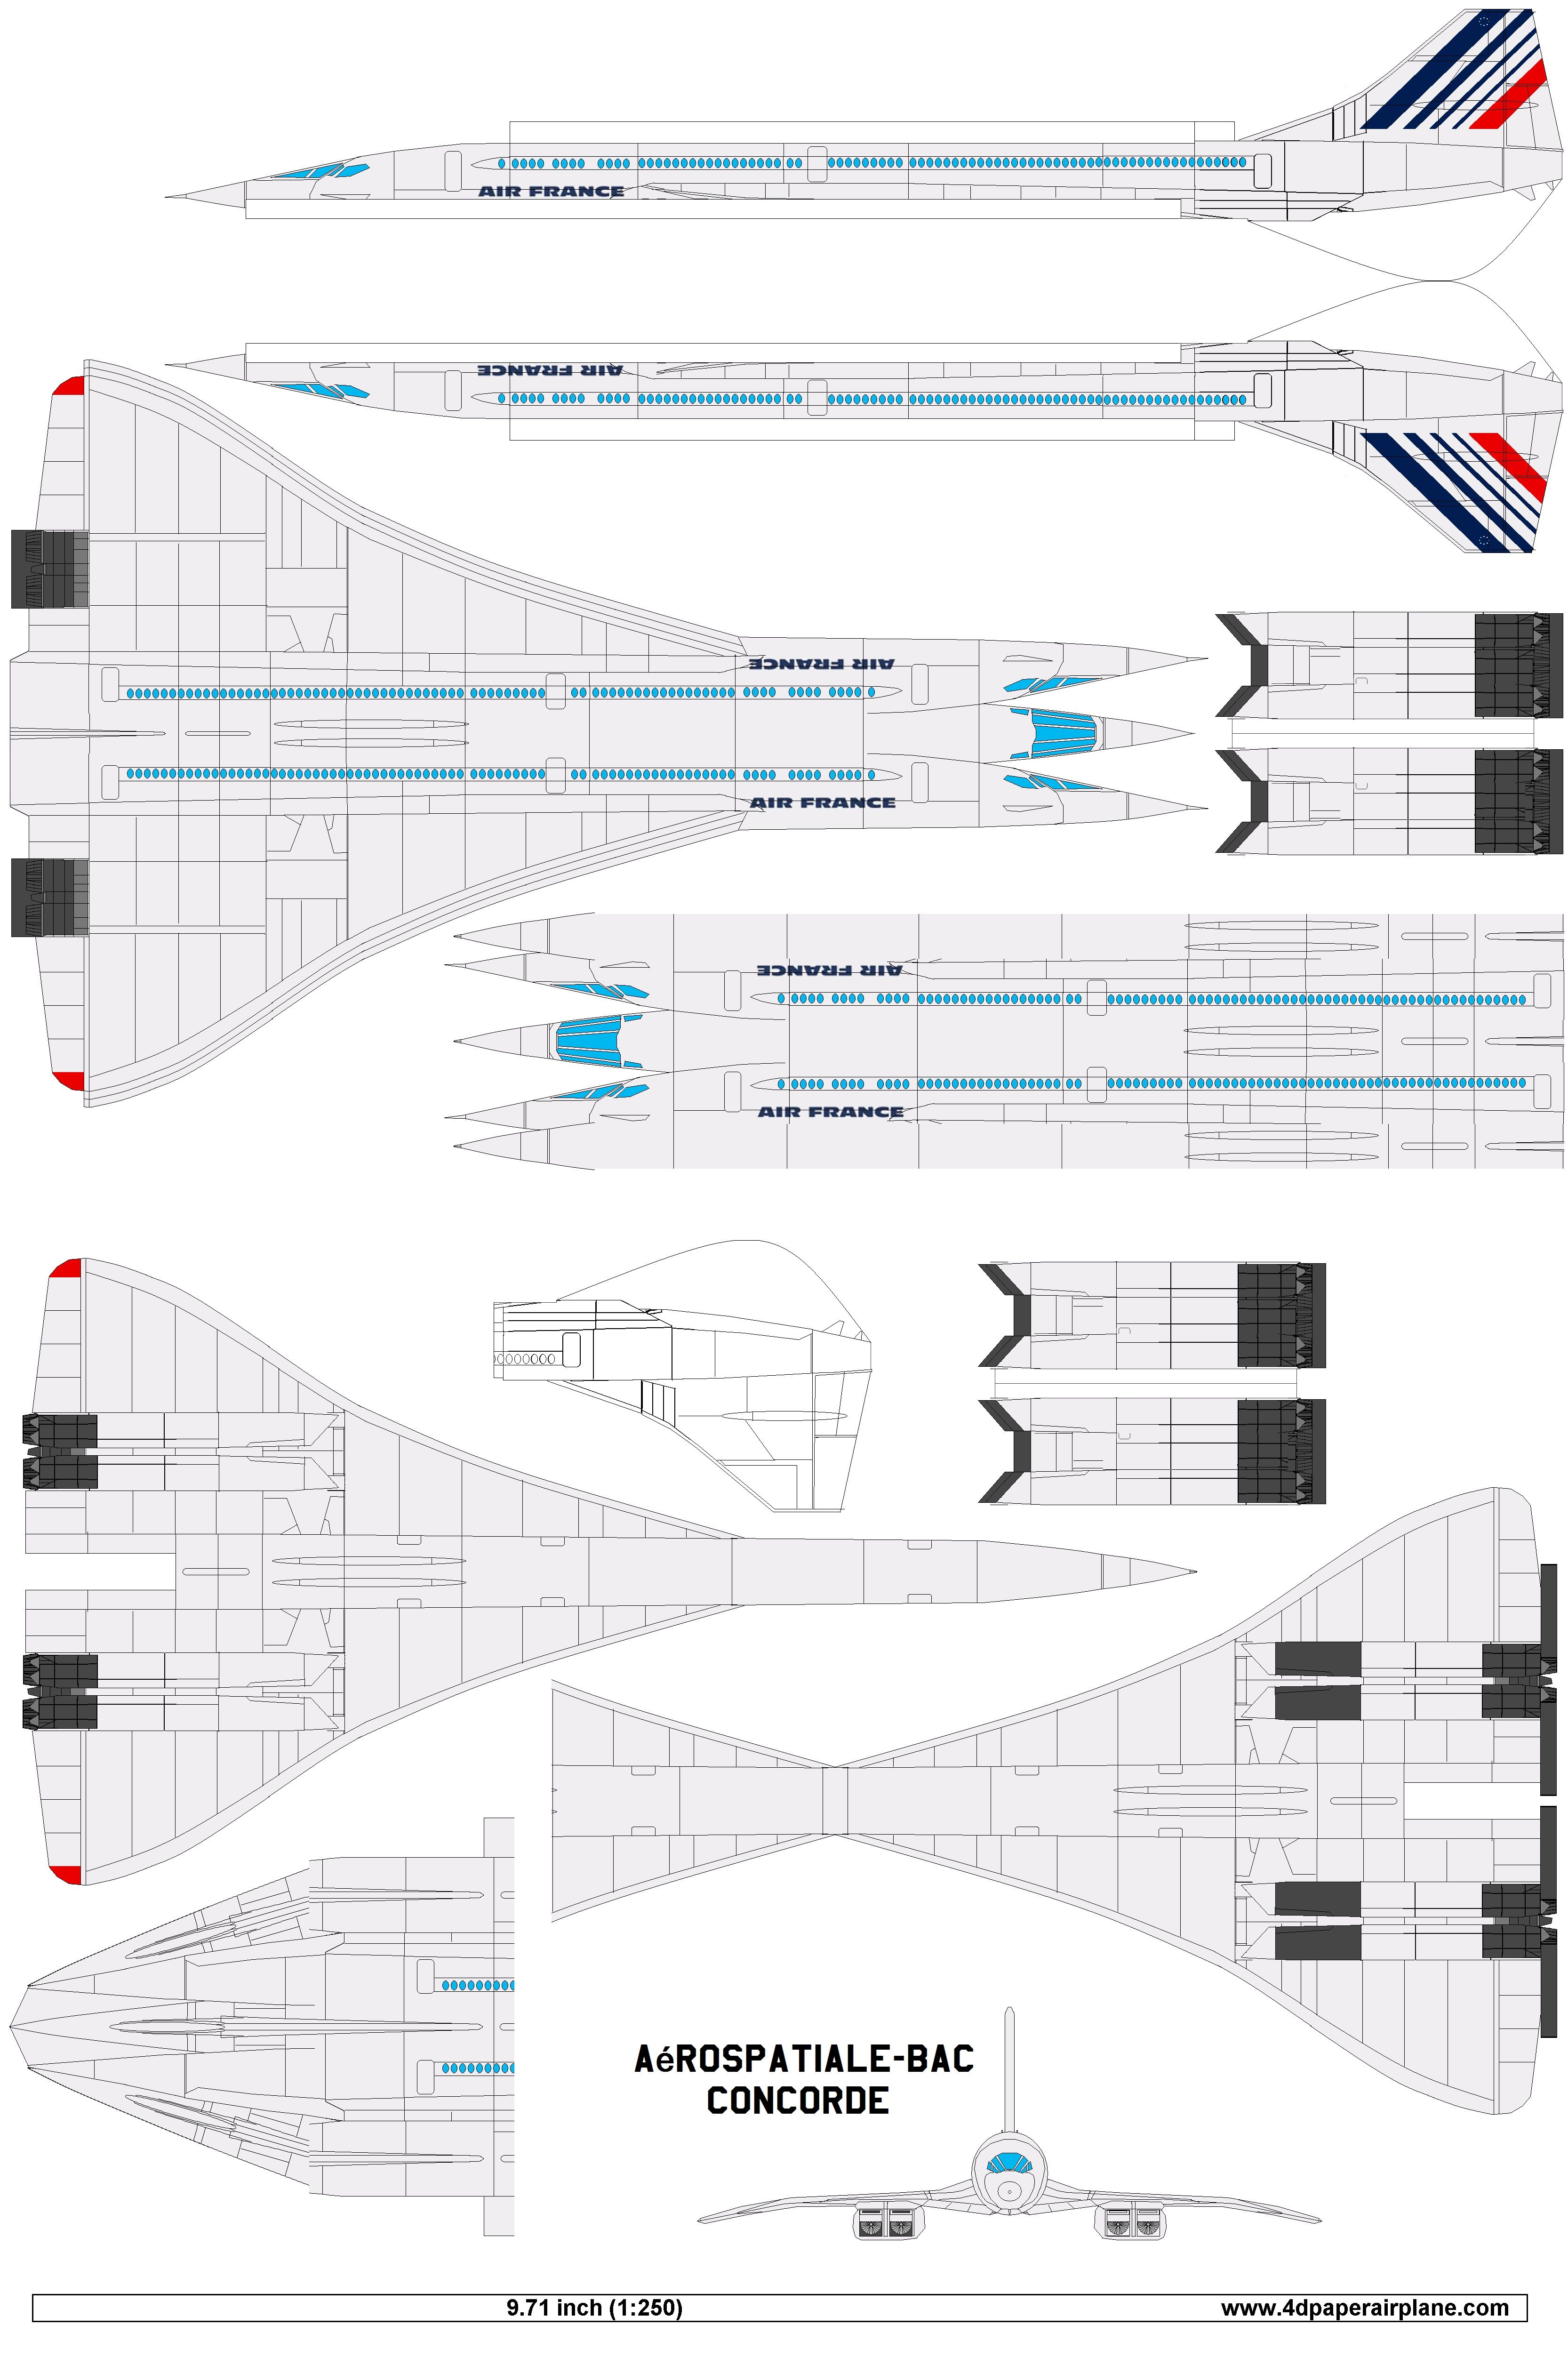 4D Model Template Of Concorde Air France 4dpa